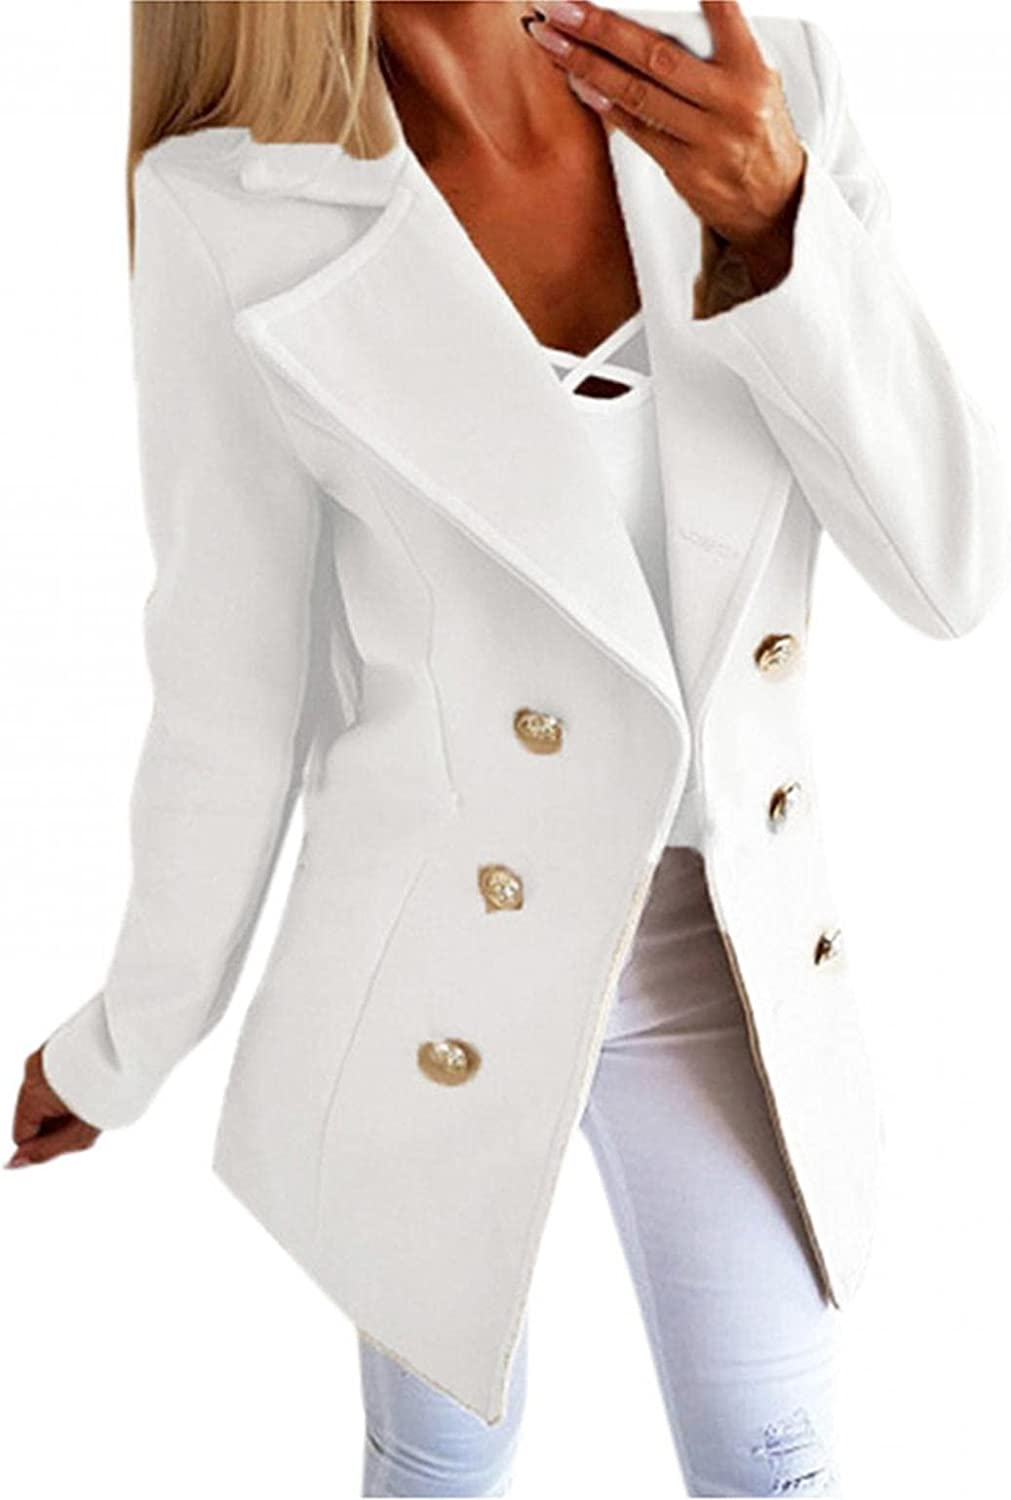 LEIYAN Womens Double-Breasted Trench Coat Long Sleeve Lapel Collar Casual Open Front Cardigan Jacket Coat Tunic Outerwear